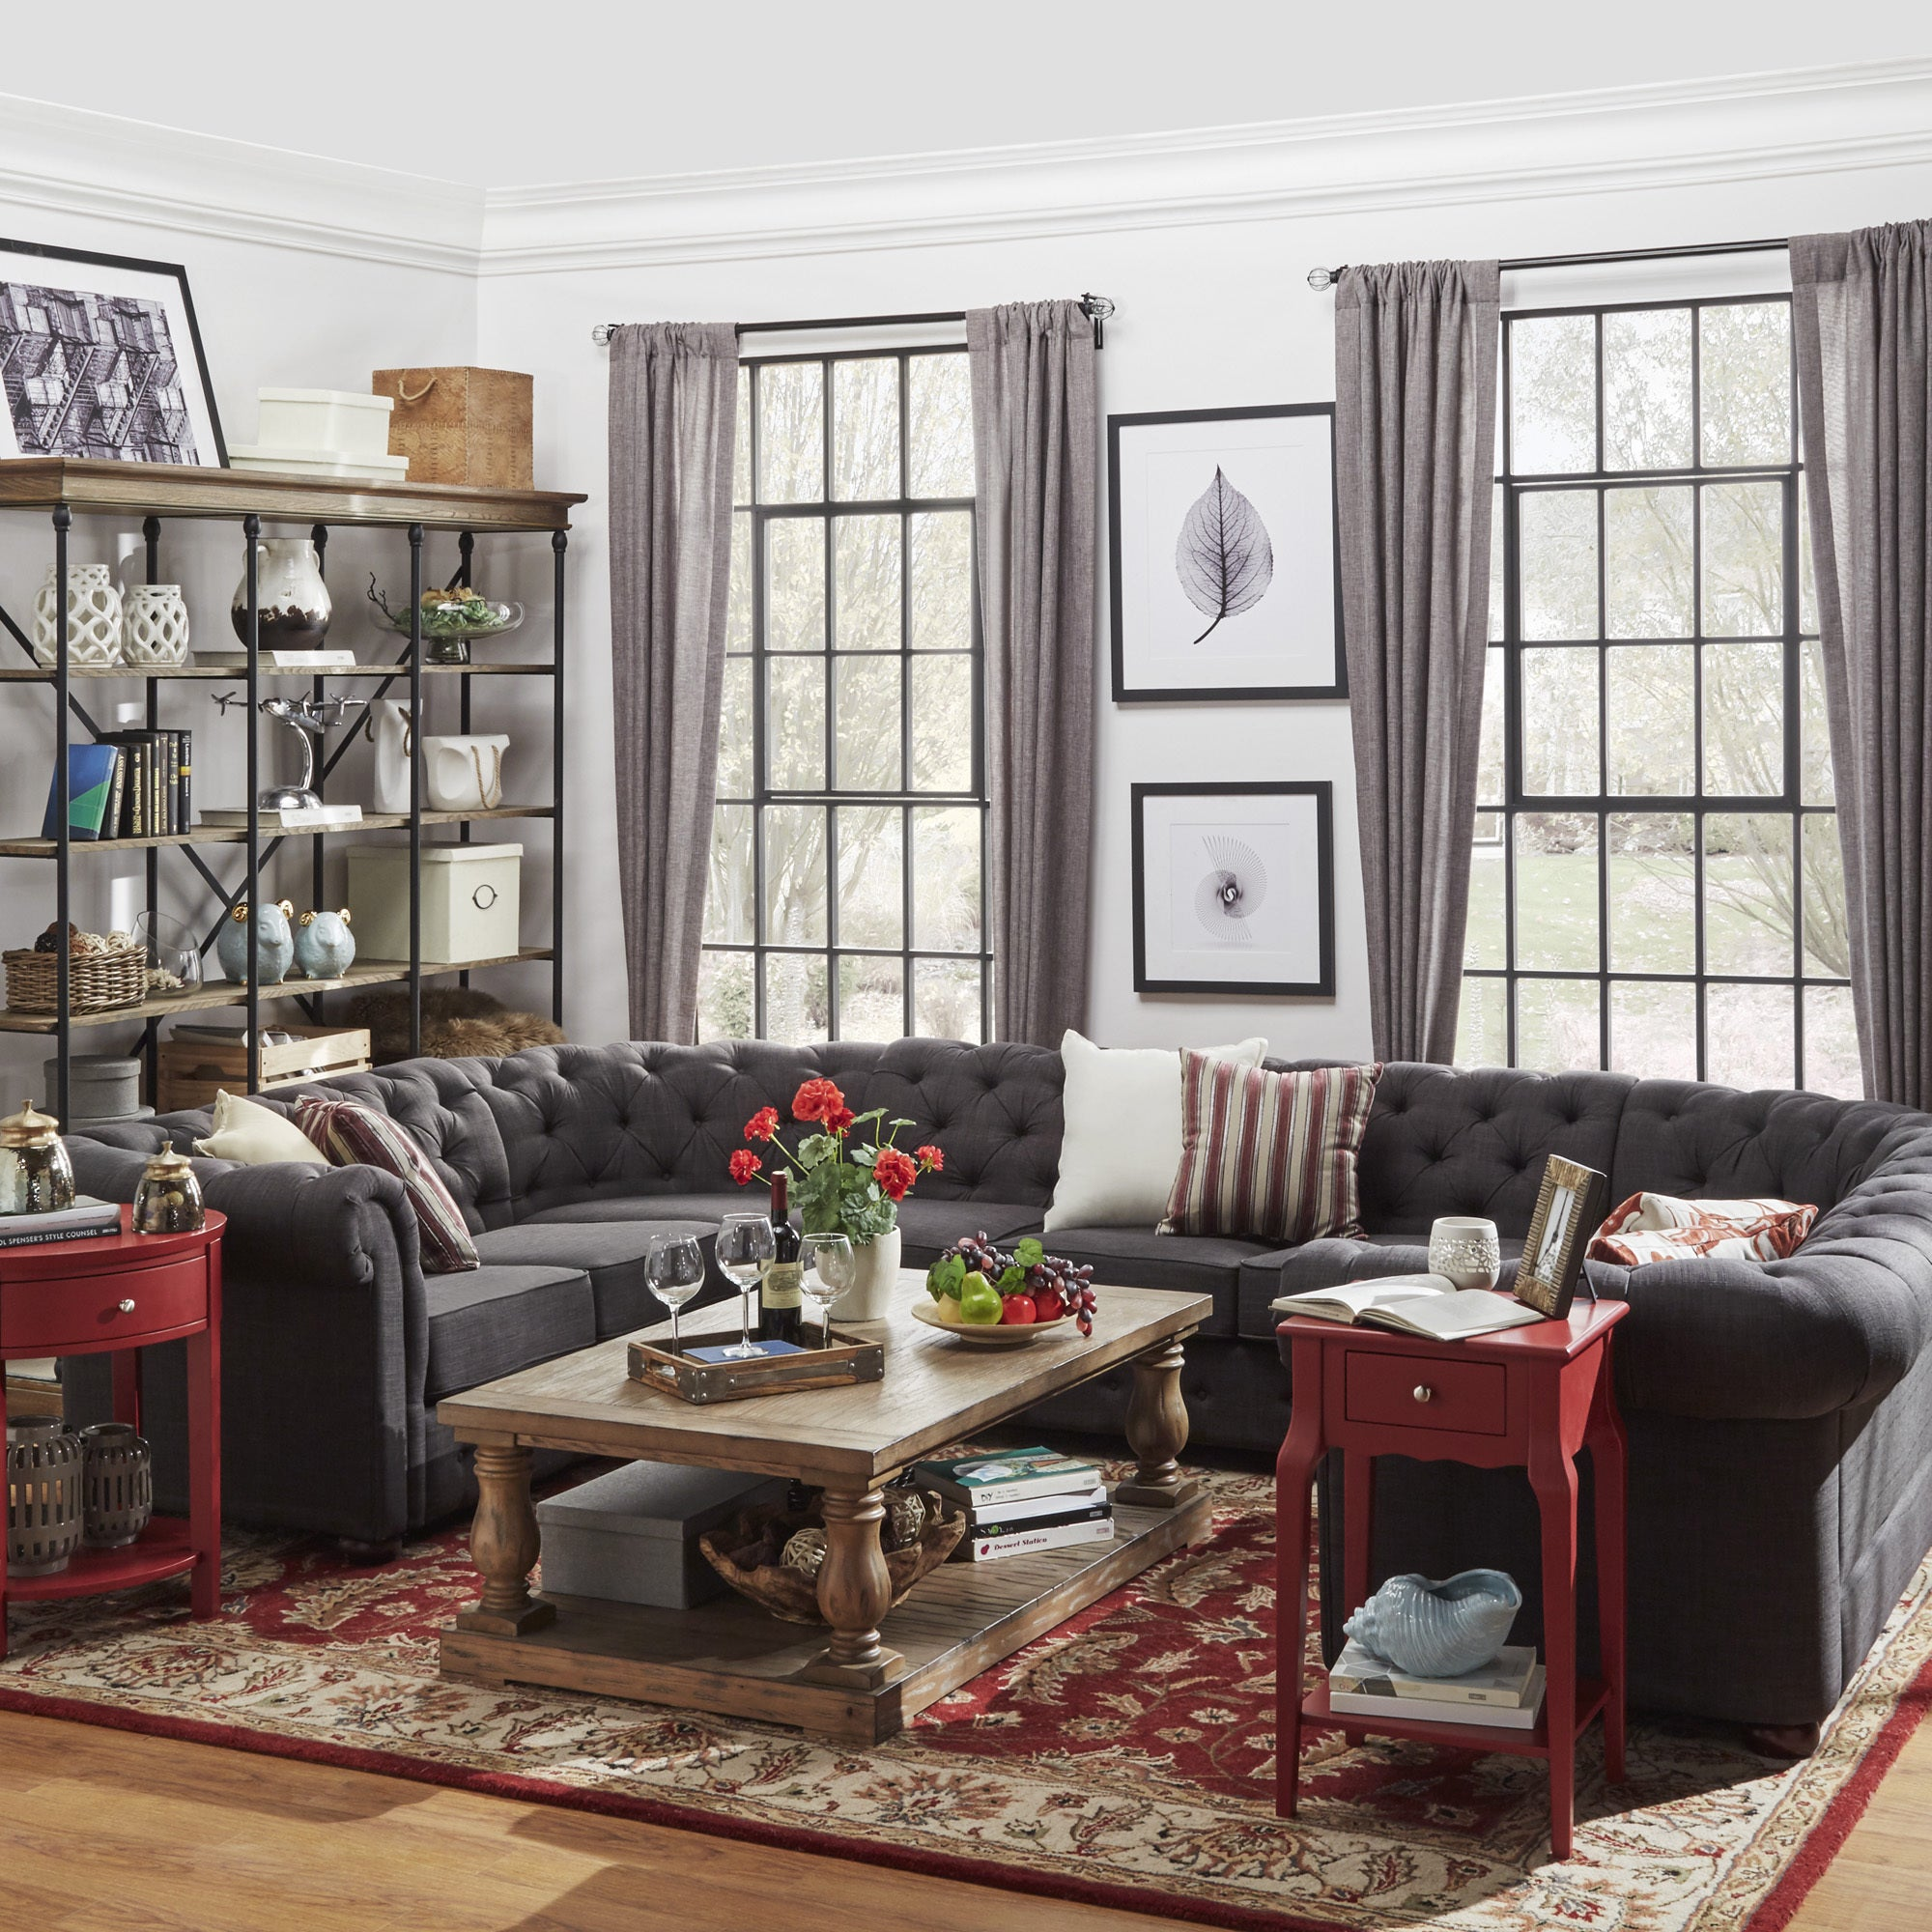 Knightsbridge Tufted Scroll Arm Chesterfield 9-seat U-shaped Sectional by  iNSPIRE Q Artisan - Free Shipping Today - Overstock.com - 18373324